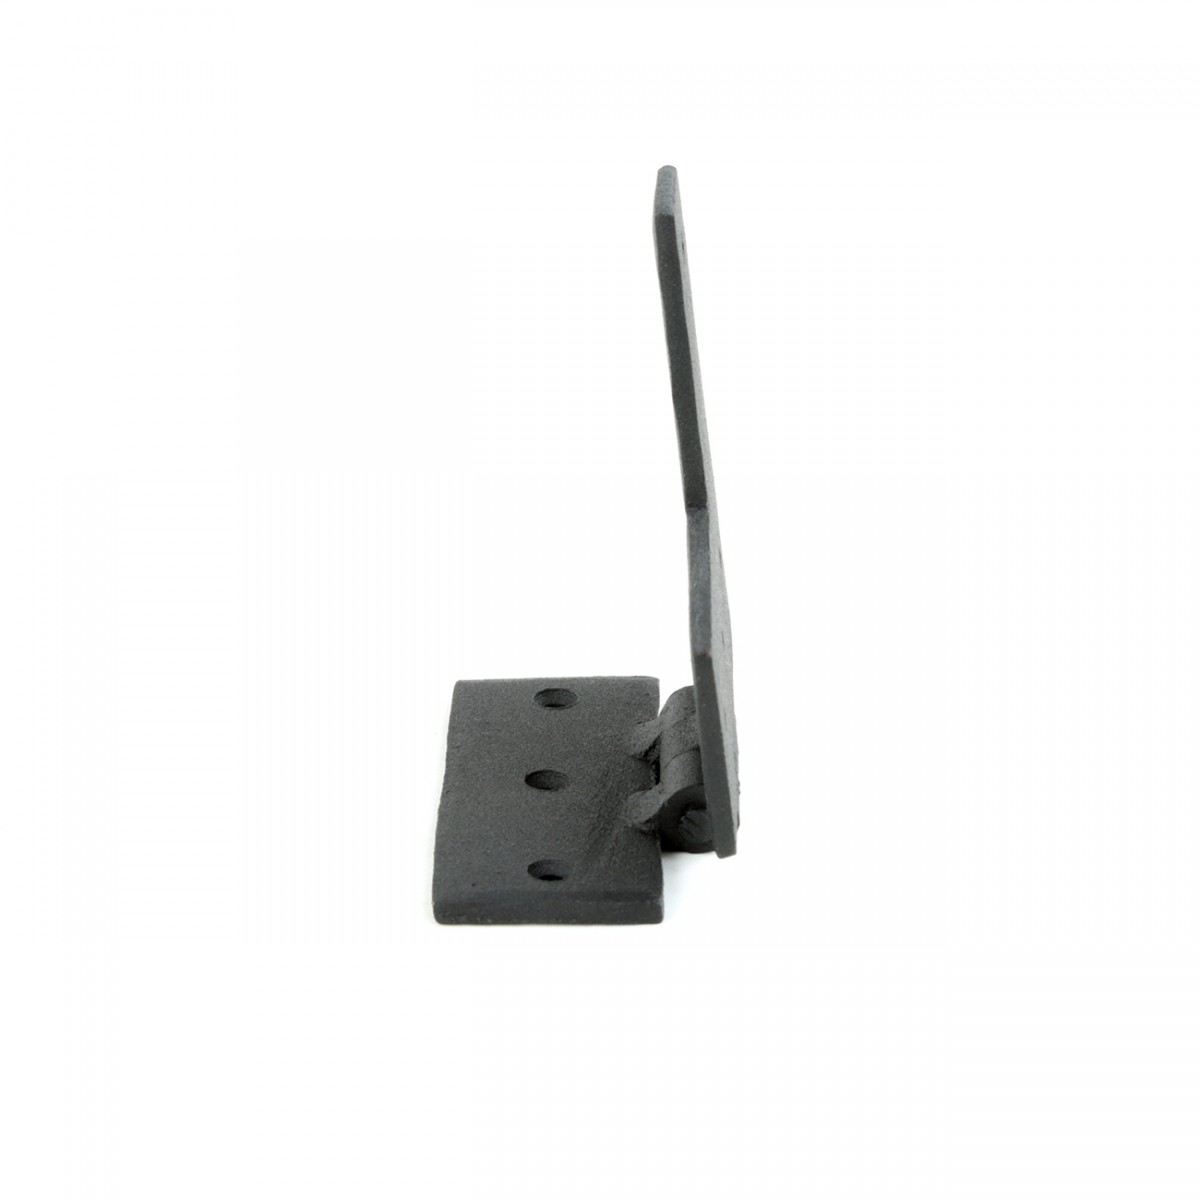 Wrought Iron HL Hinge Black Rustproof Right Side 3 Wrought Iron Door Hinges Black Door Hinges Rustproof Cabinet Hinges